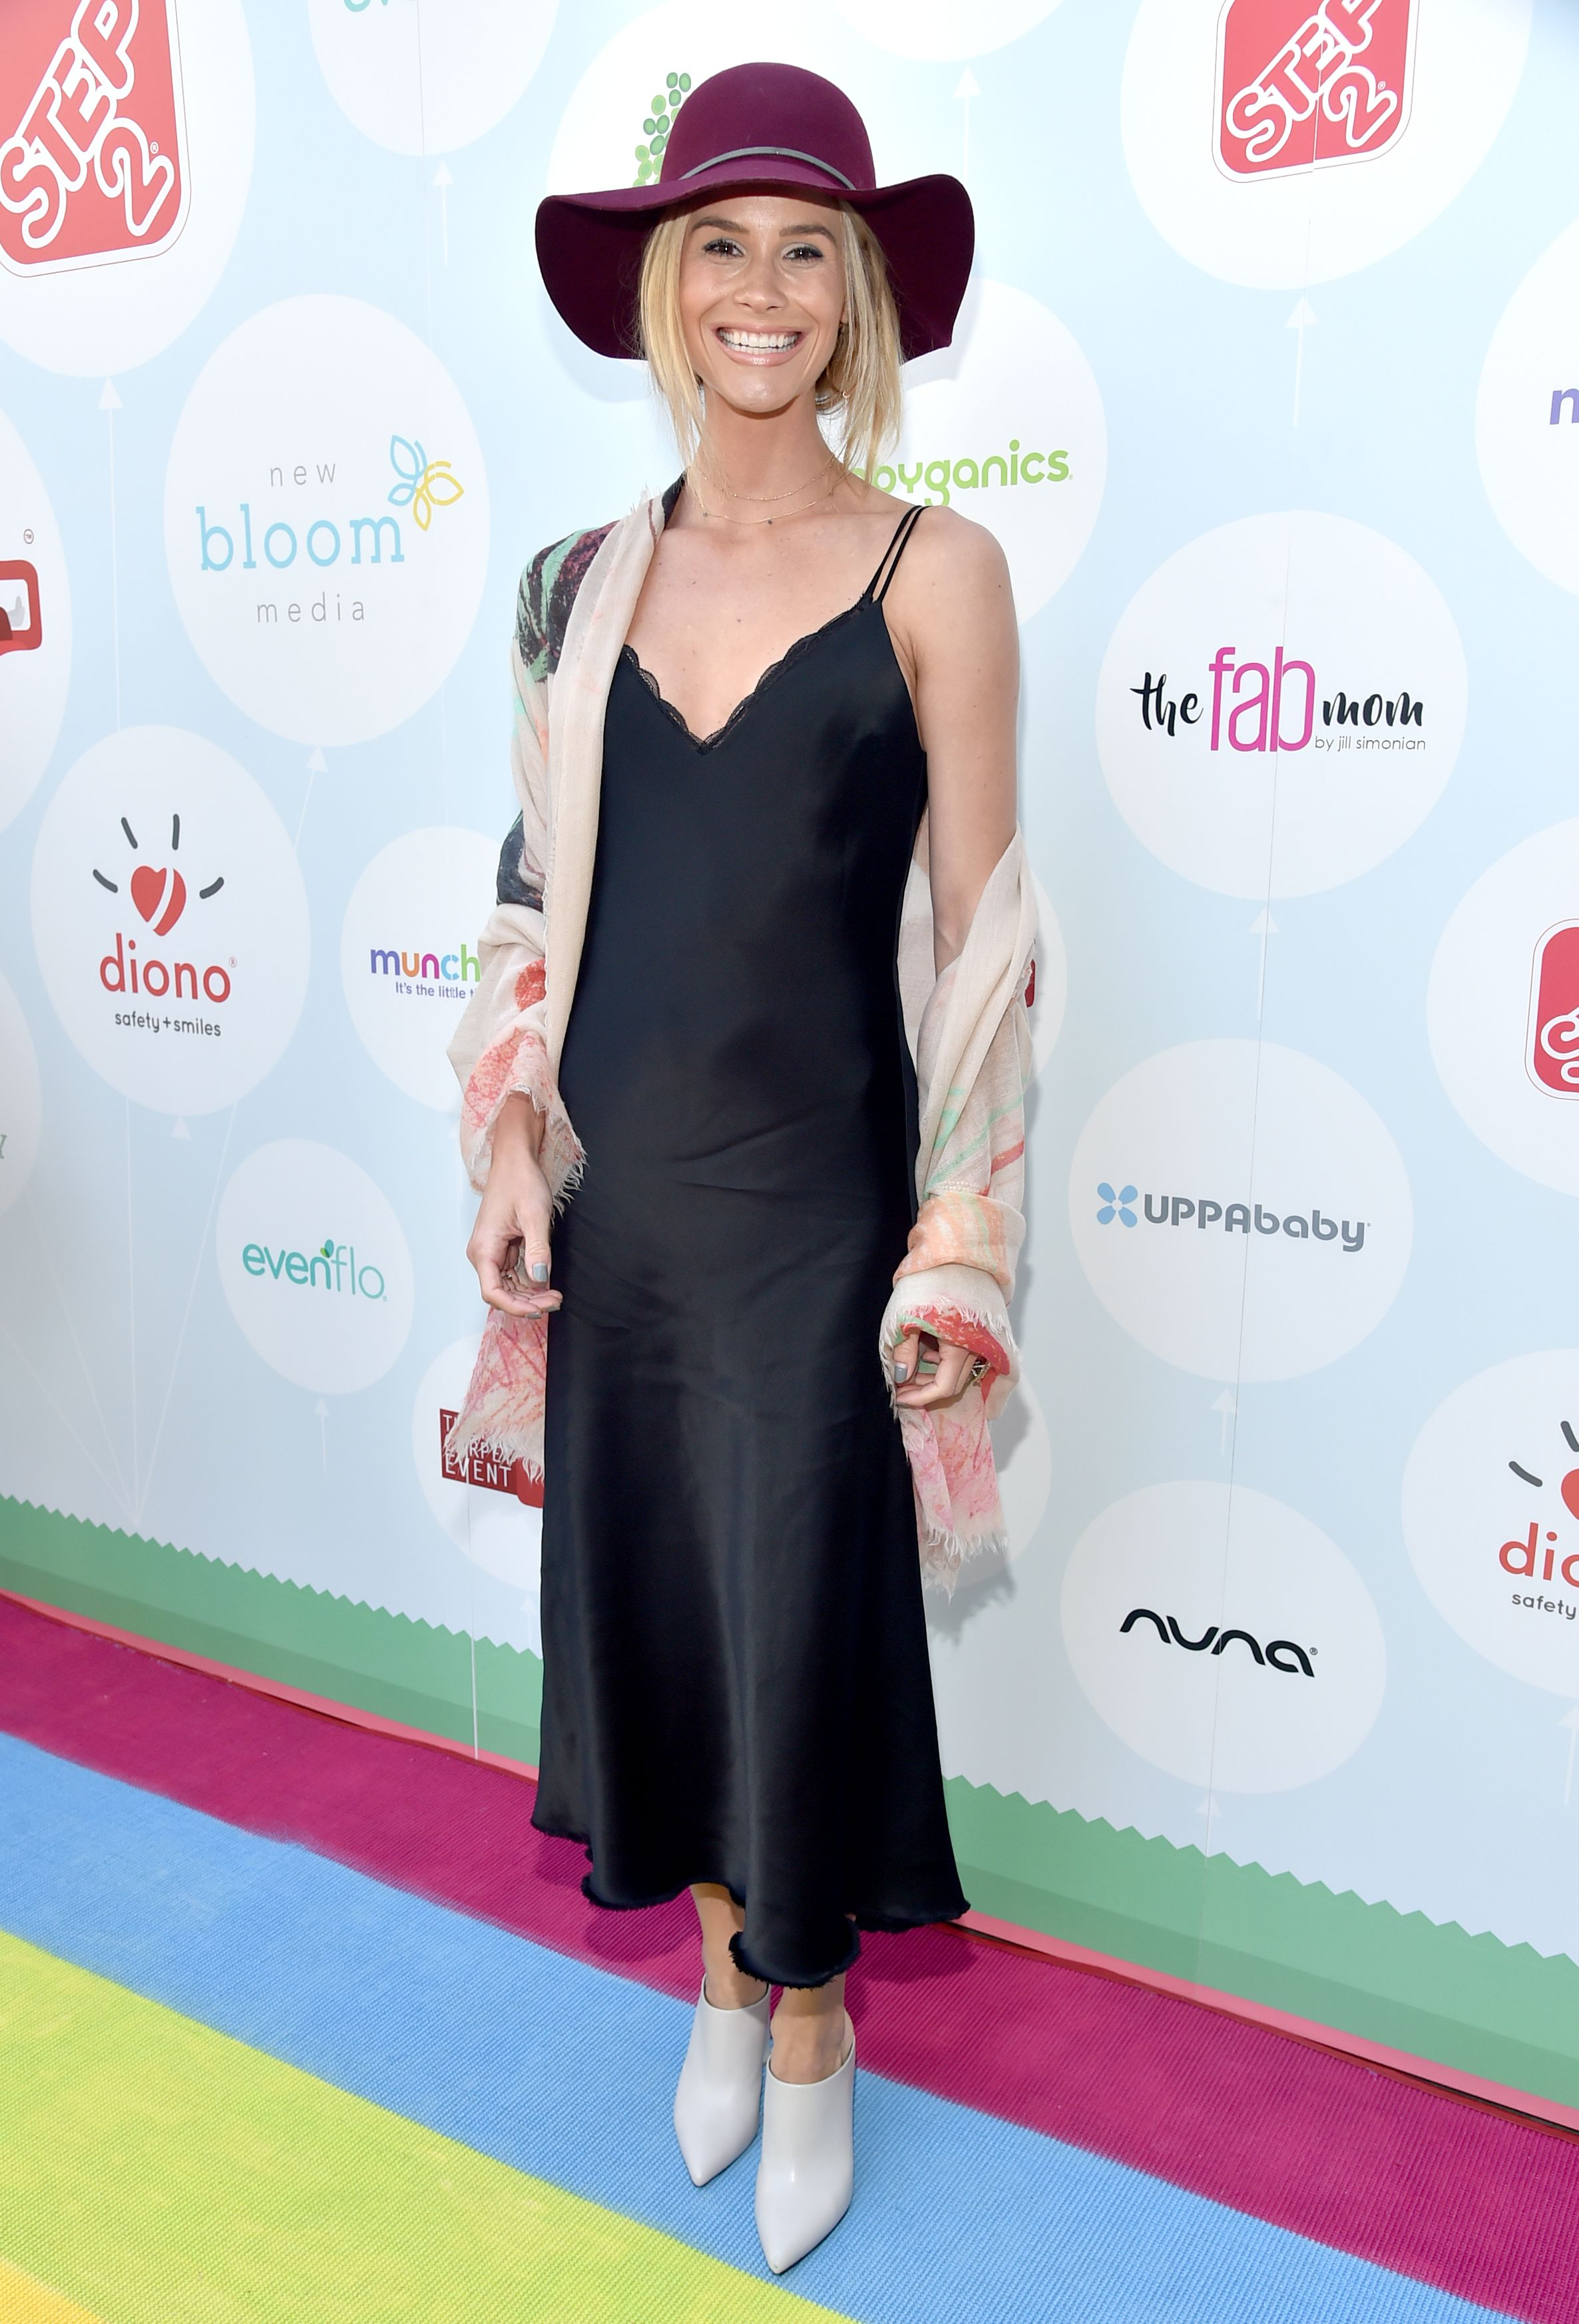 Meghan King Edmonds at Step 2 Presents 6th Annual Celebrity Red CARpet Safety Awareness Event on September 23, 2017 | Photo: Getty Images